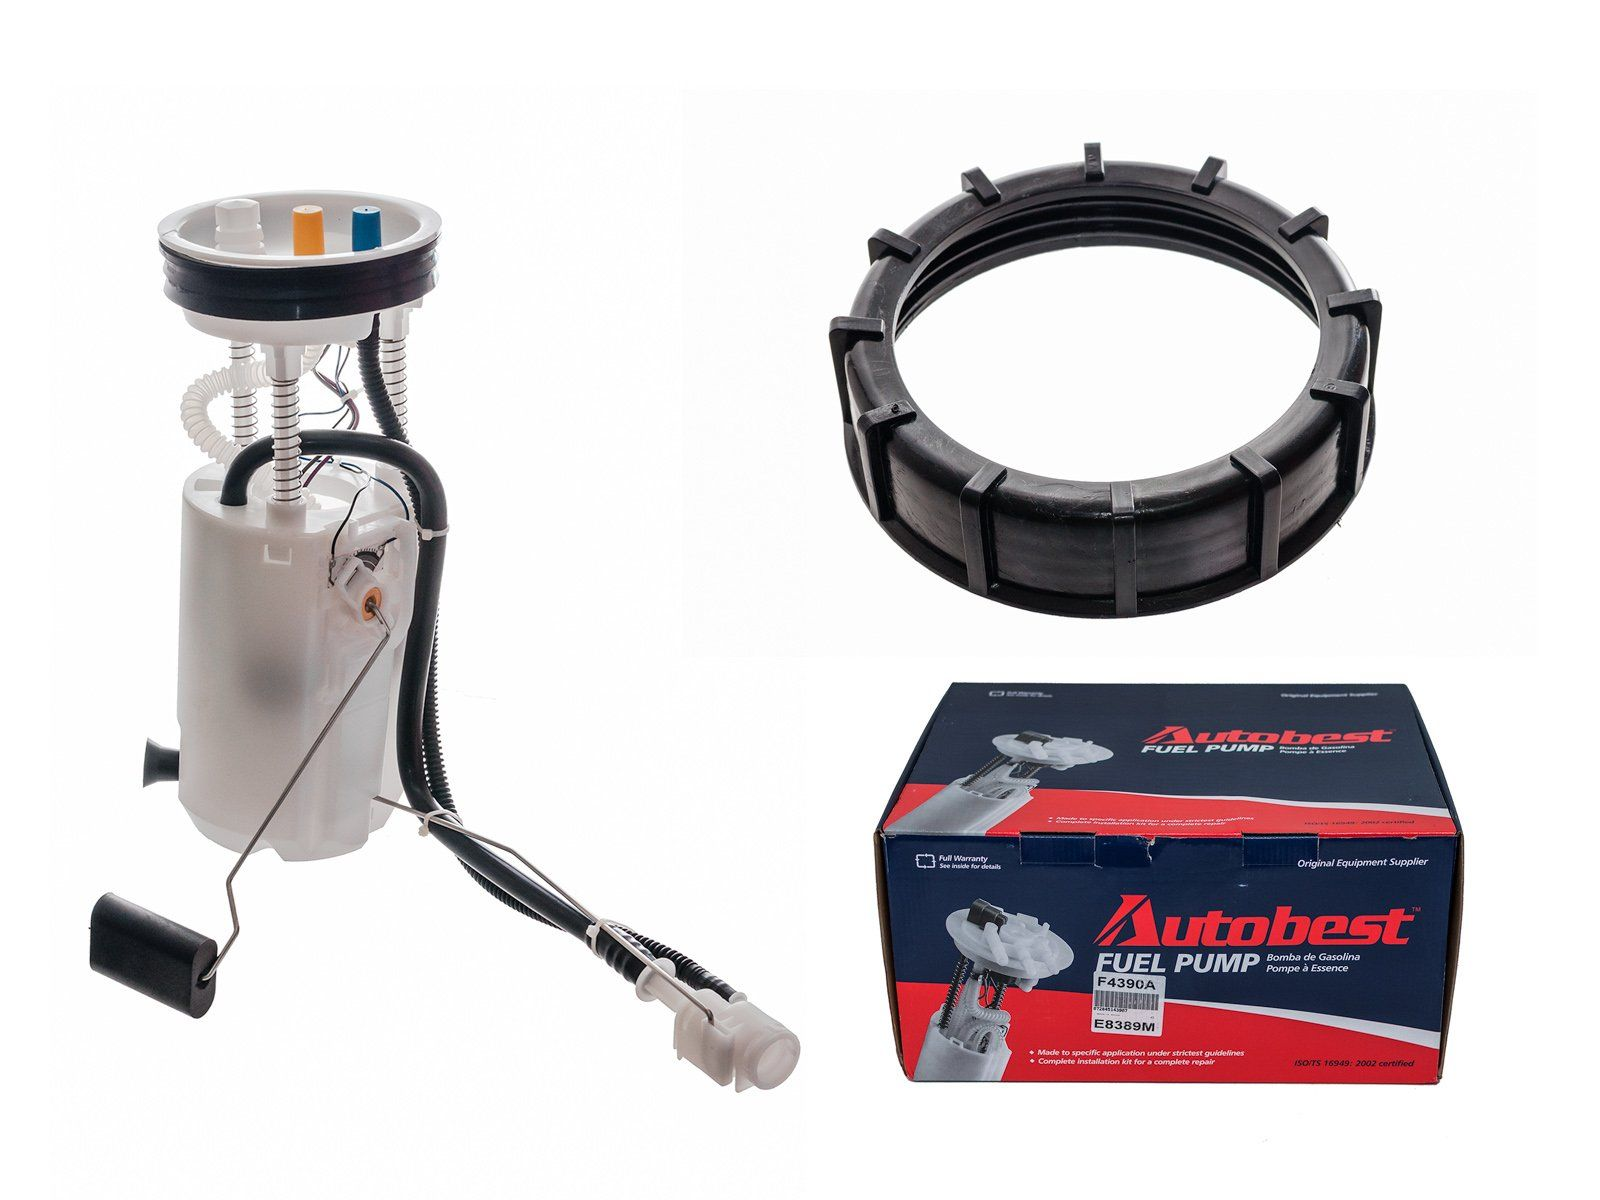 Mercedes Benz Ml320 Fuel Pump Module Assembly Replacement Apa Uro 1998 Filter 2003 6 Cyl 32l Autobest F4390a Includes Sending Unit Float Reservoir And Strainer